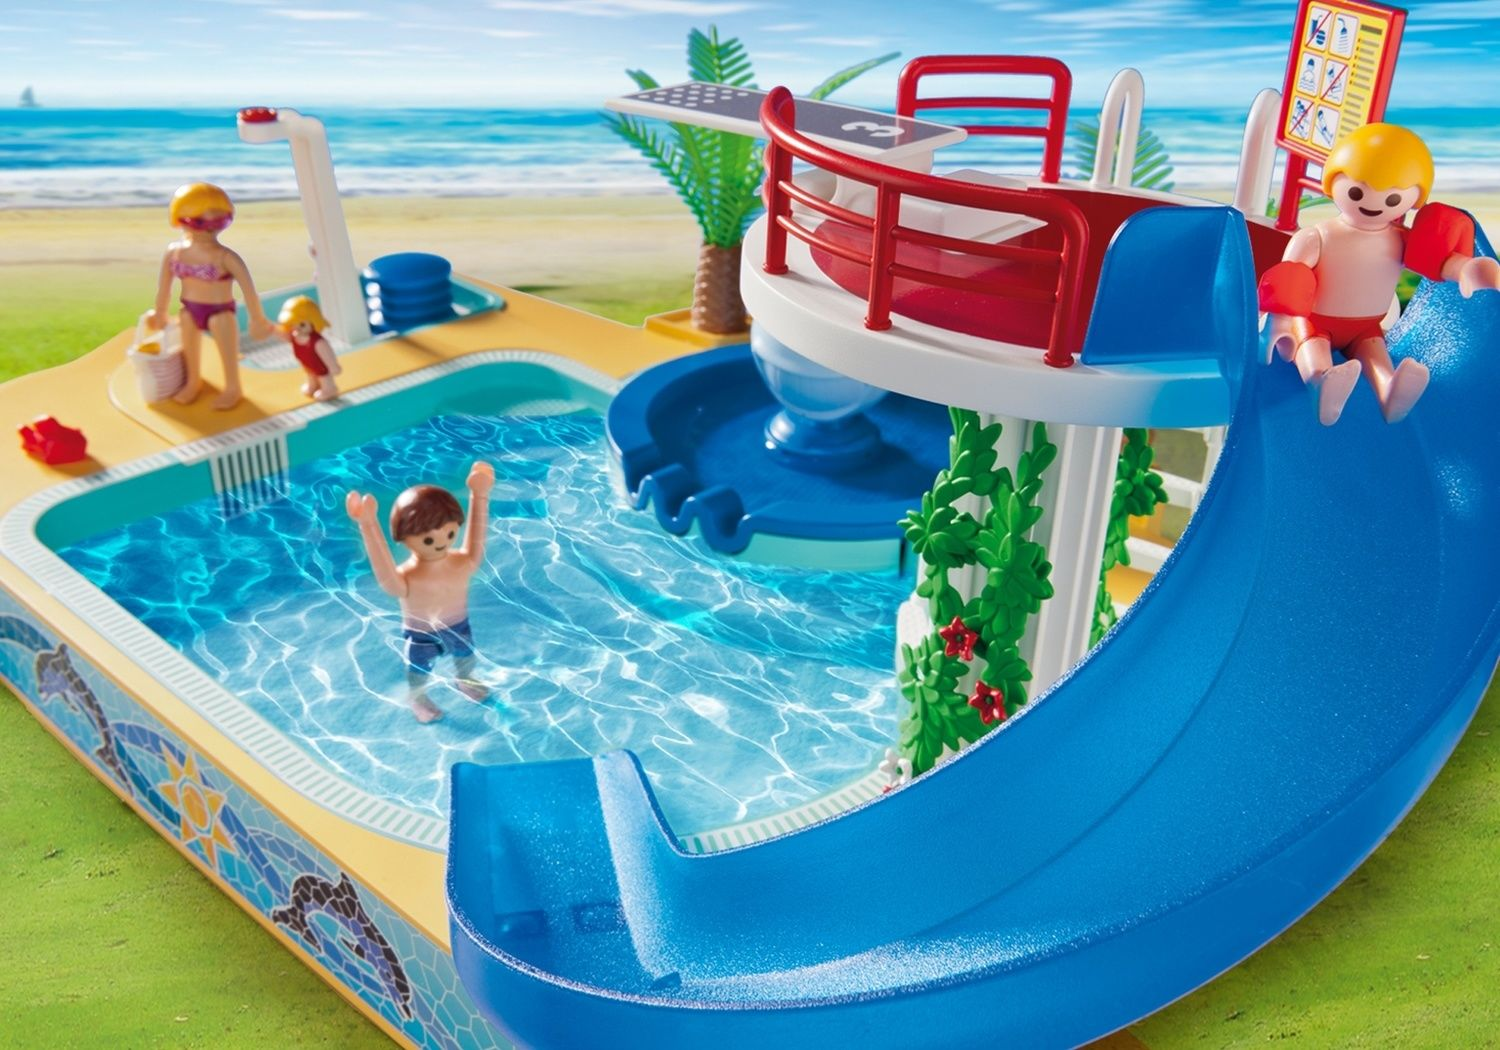 Swimming Pool With Whale Fountain   Playmobil Sets 5433